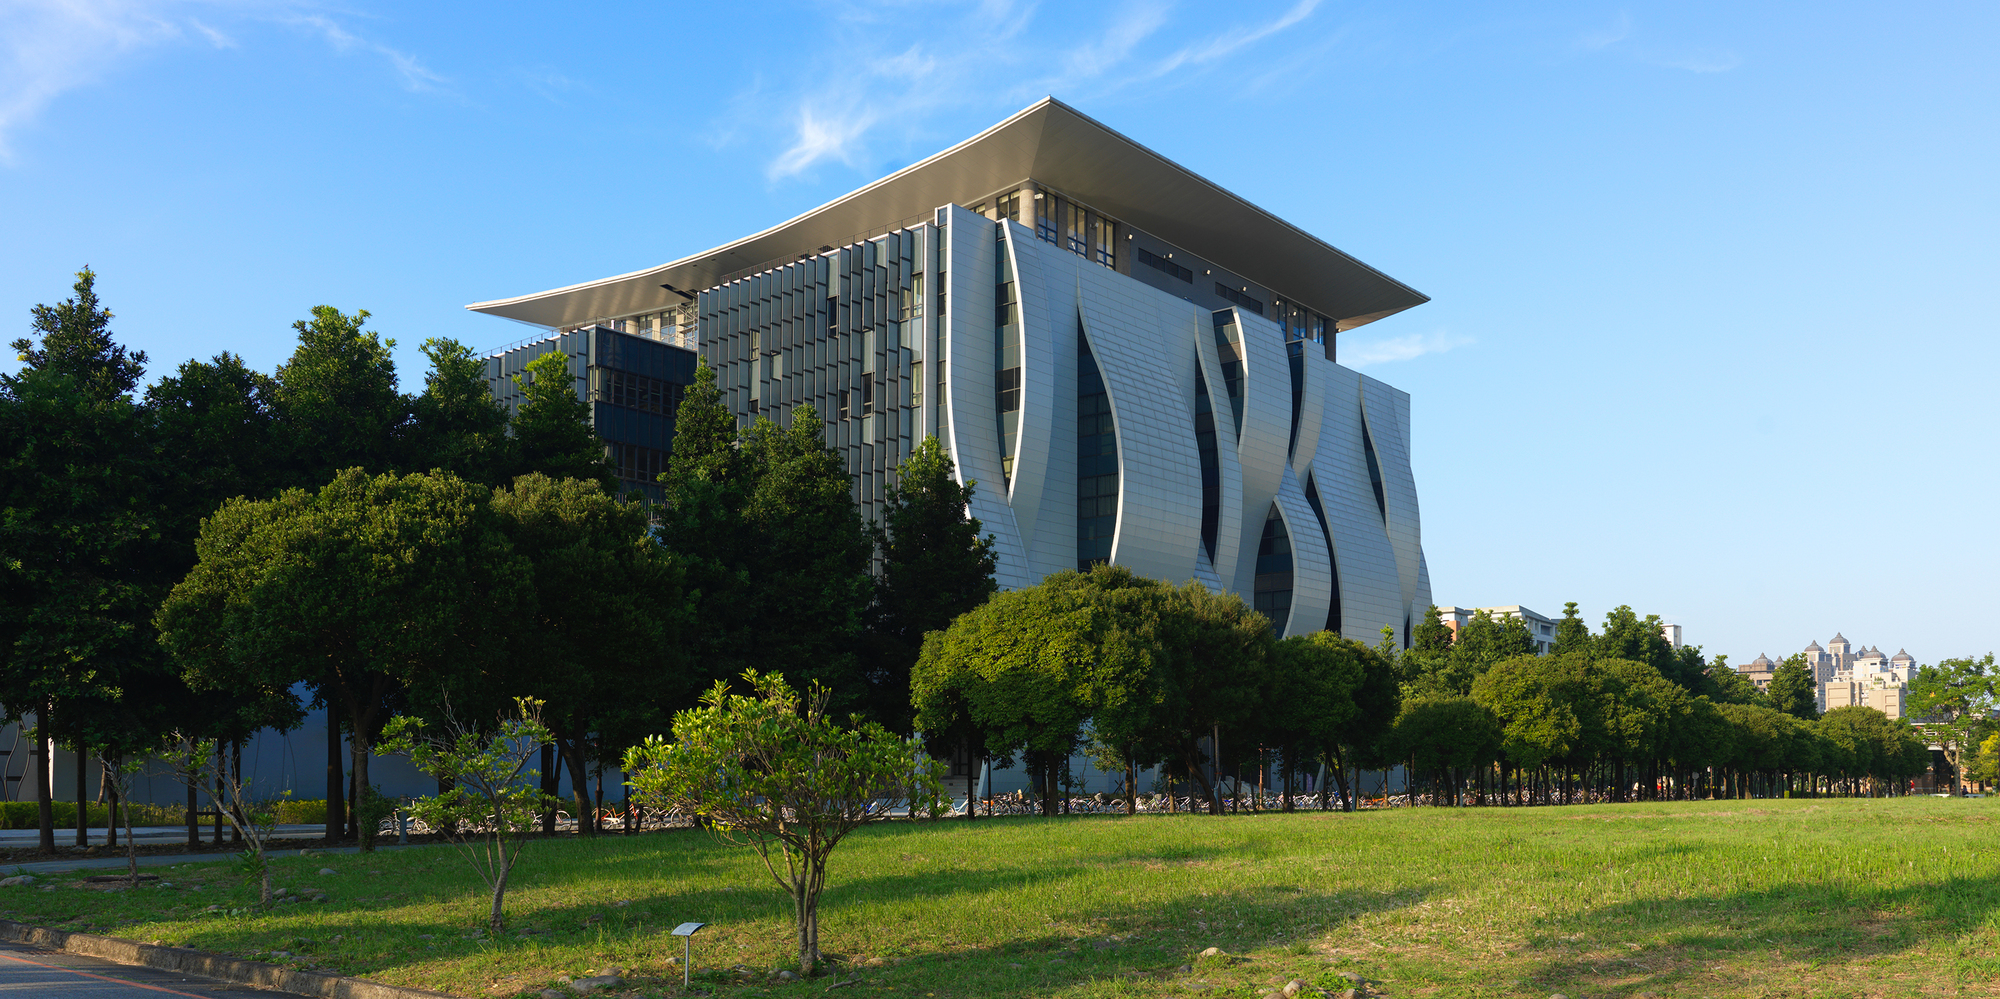 54d083f7e58ece990100052e_taipei-univesity-library-liao-architect-associates_ssly_13814